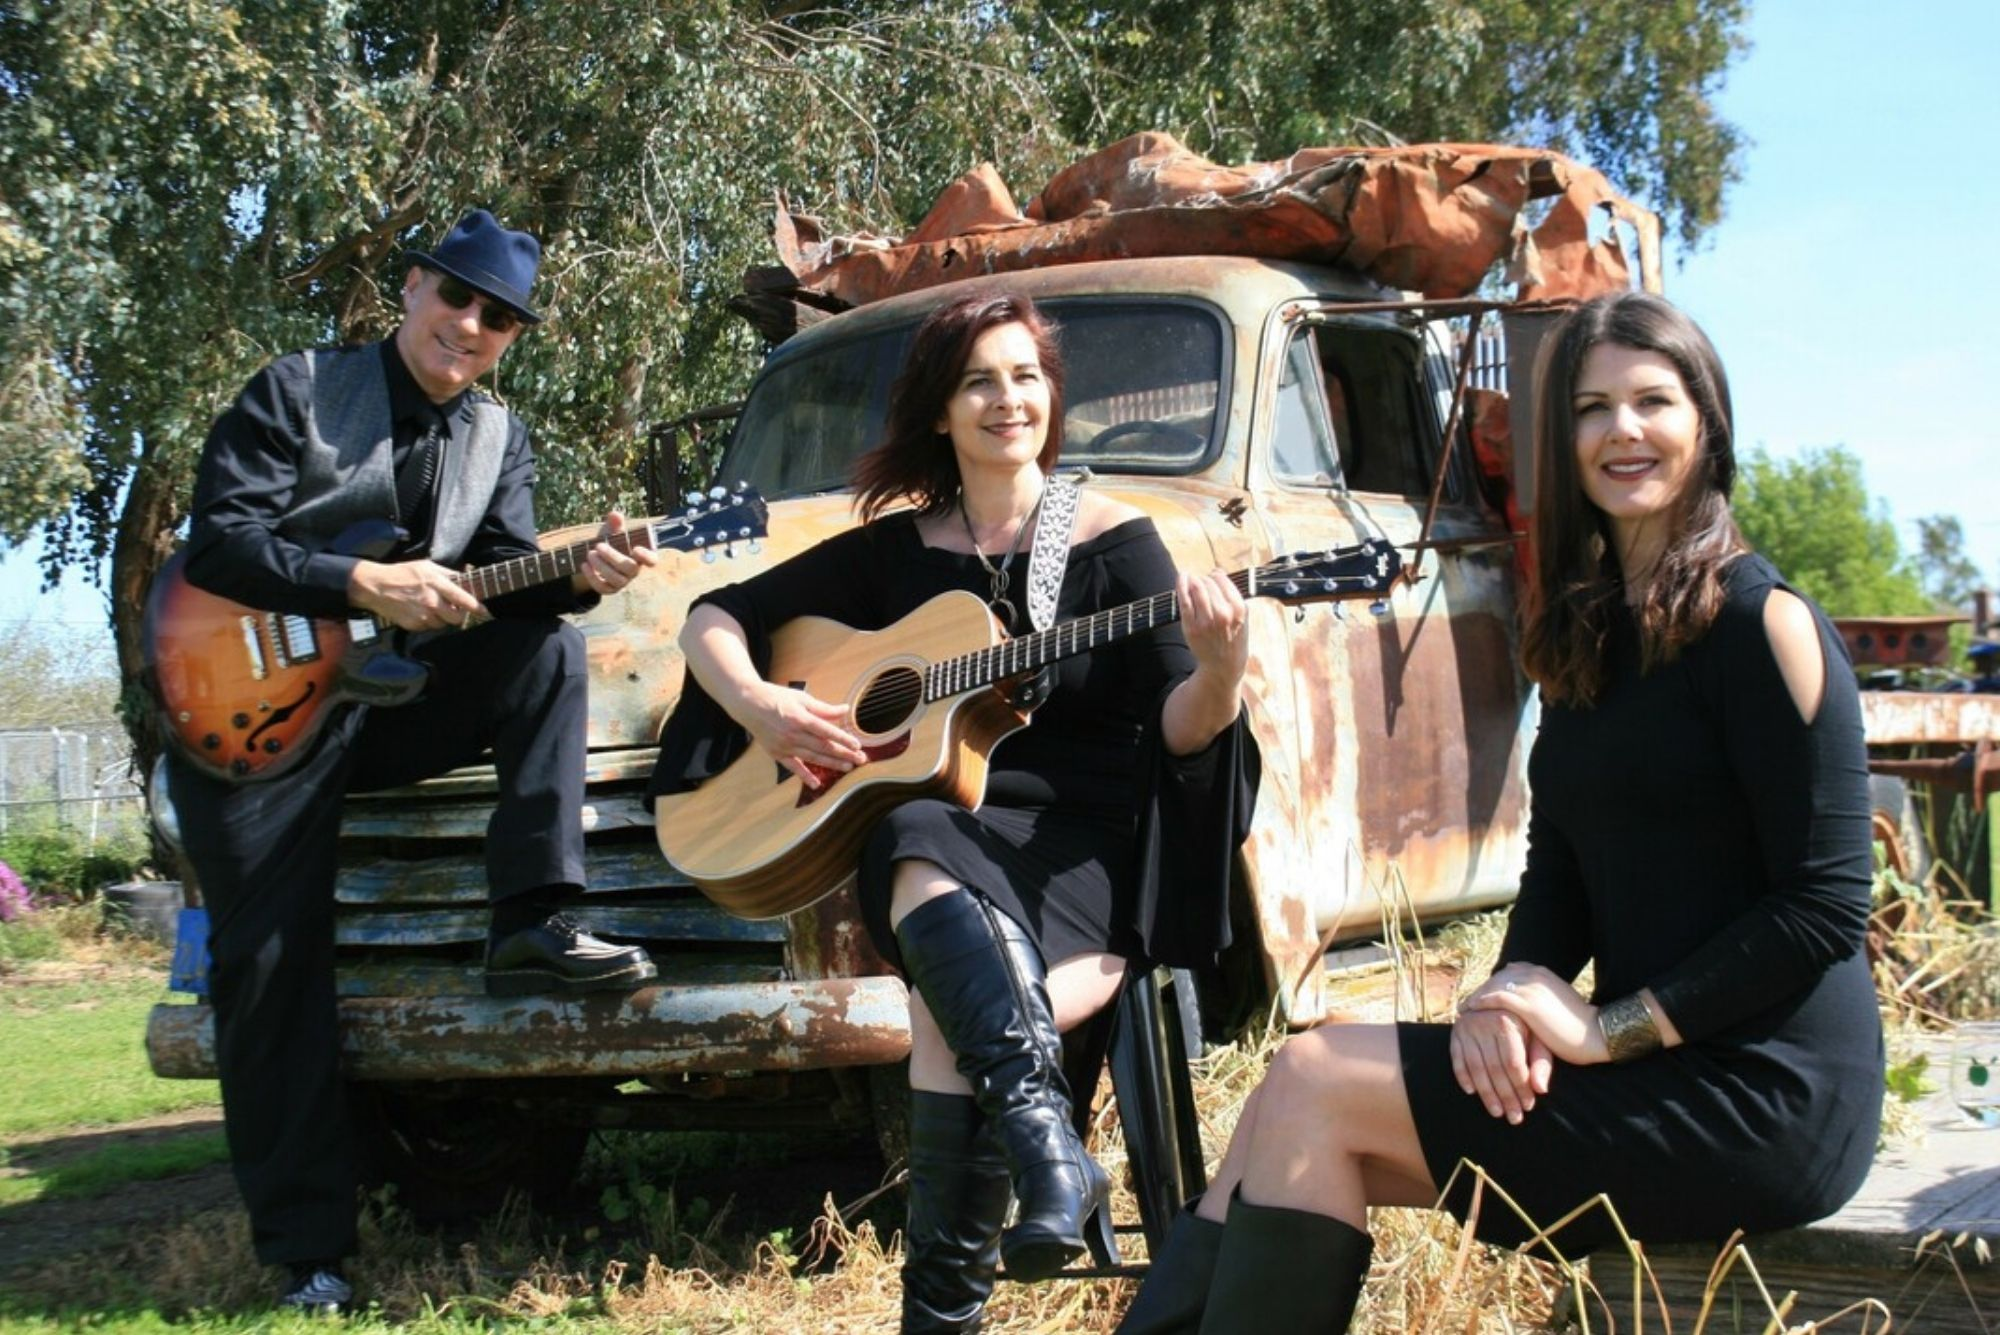 Fish N Chicks Band Performing at Viaggio Winery